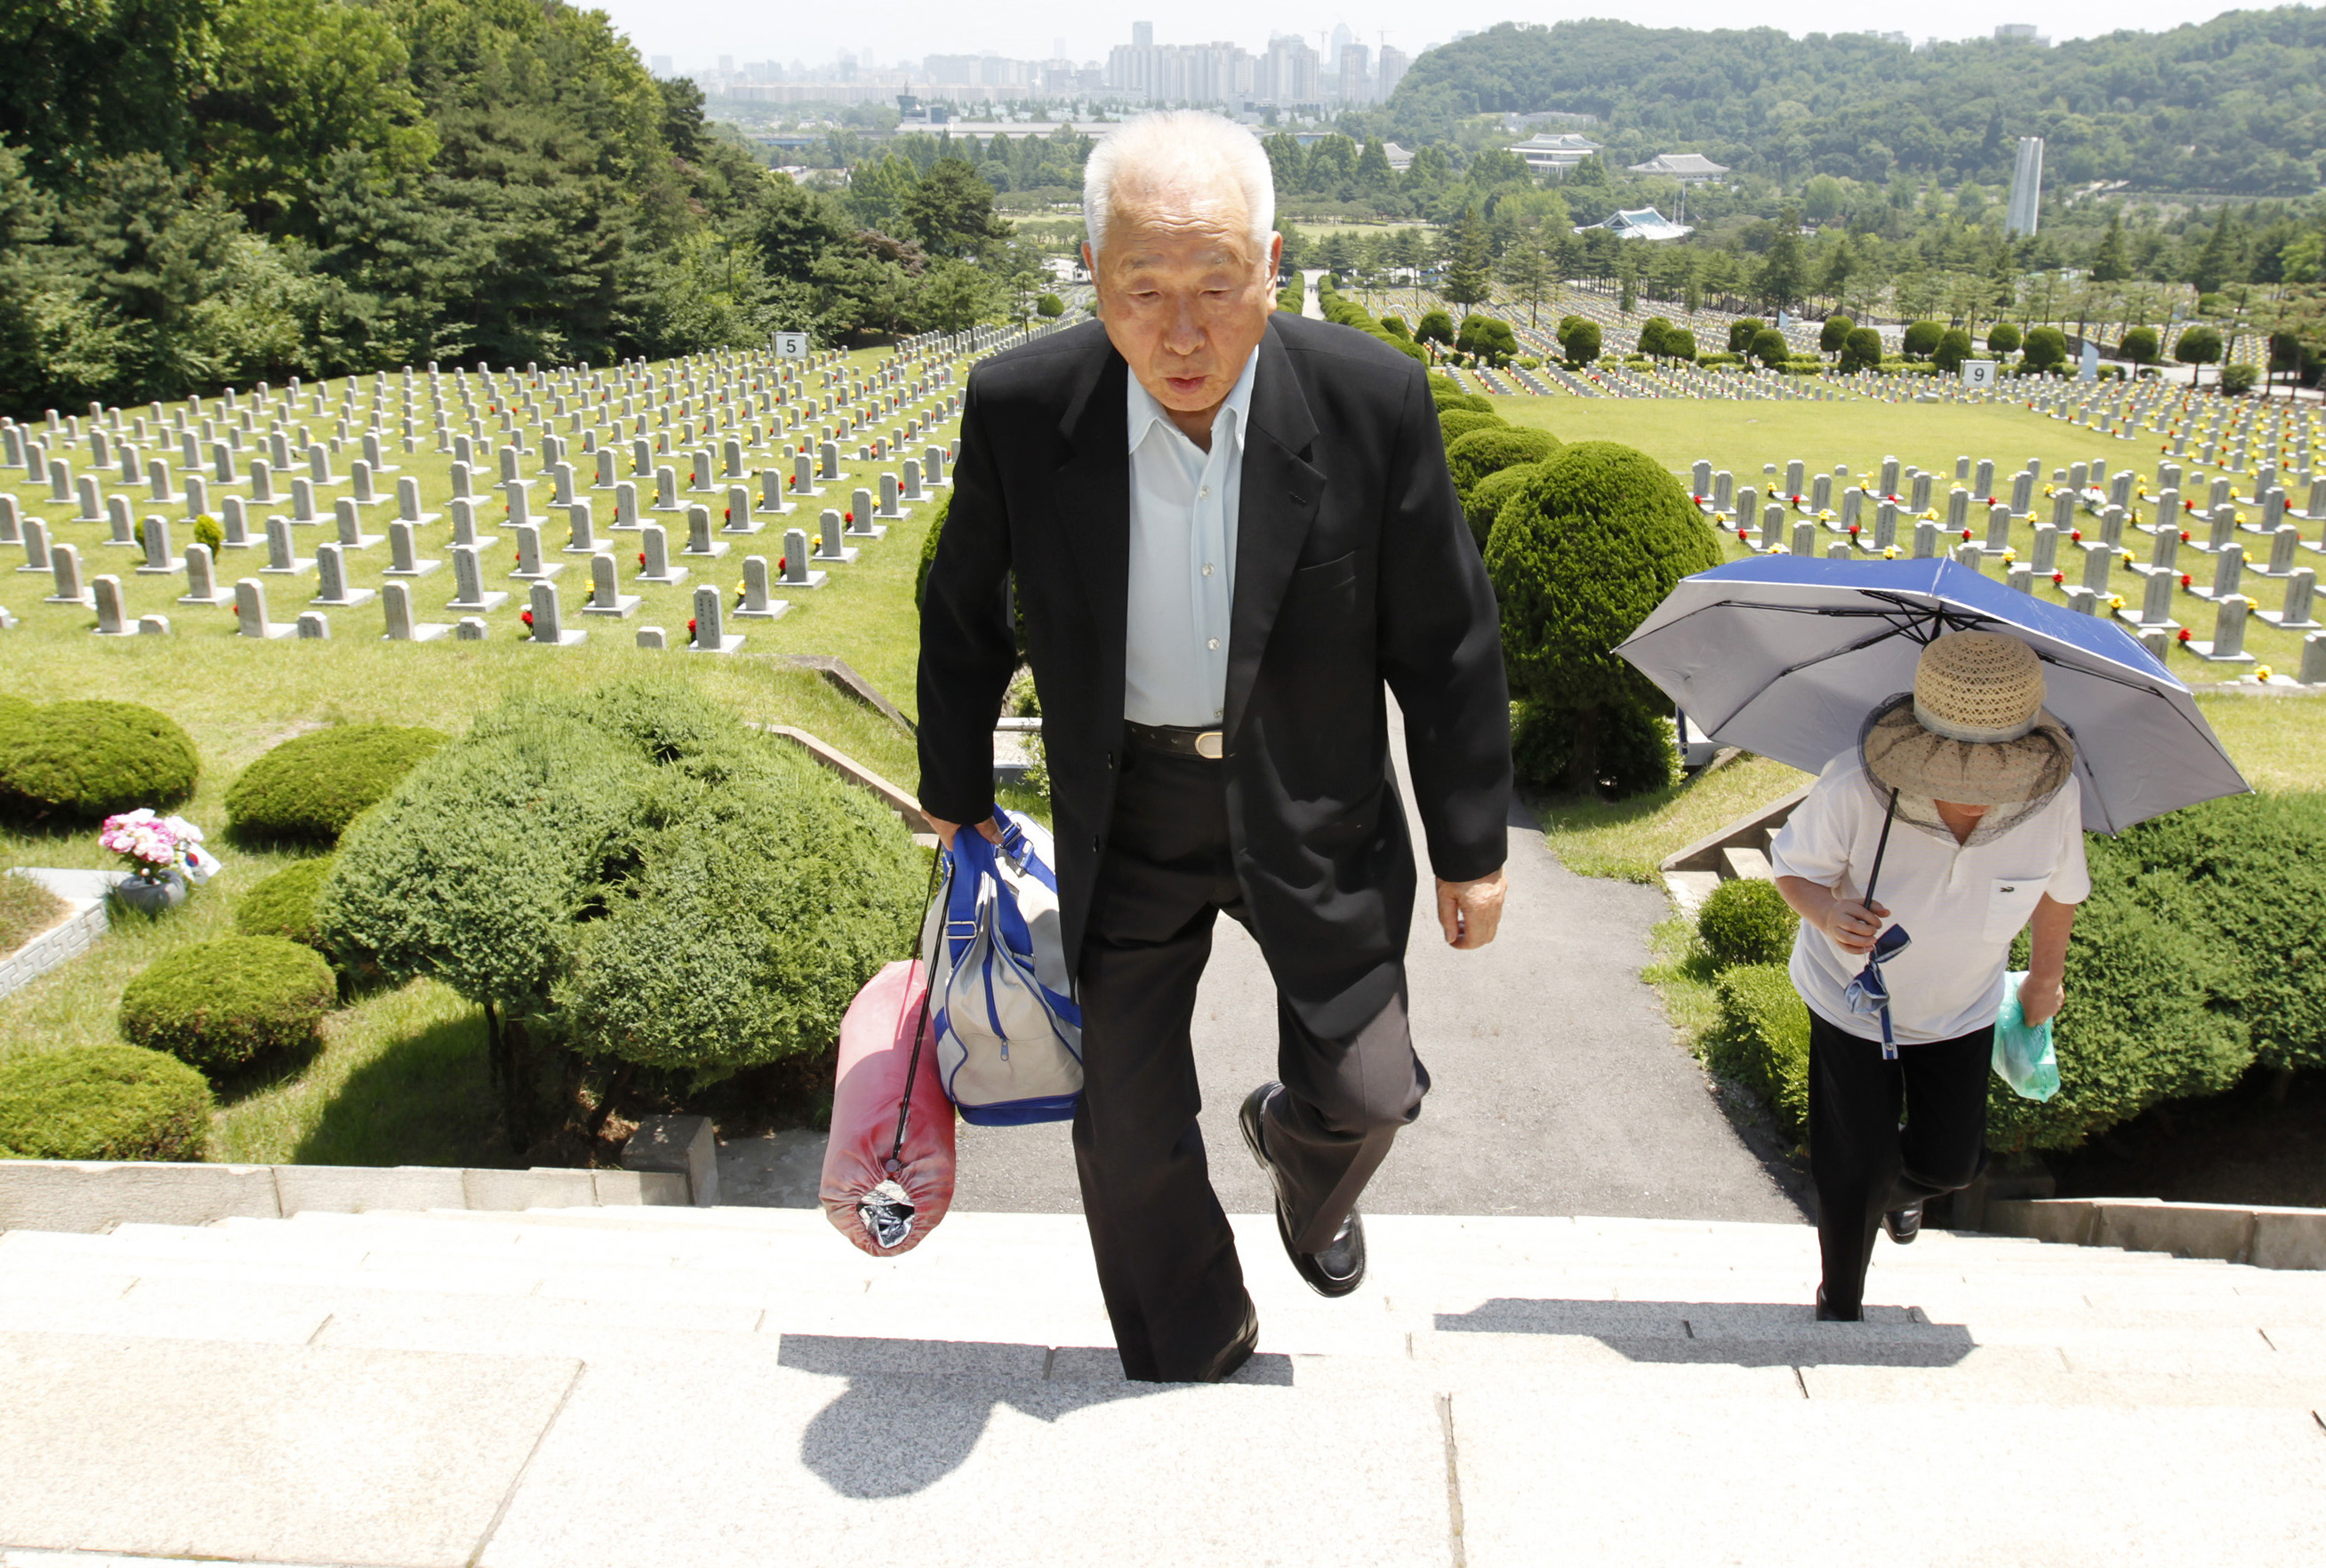 FILE - Ju Hong-jang, left, 81, and his wife Yoon Bok-hee, 73, leave after they visited a gravestone of his father Ju Bong-gyeom, a police officer who died in 1952 during the Korean War, at the National Cemetery in Seoul, June 23, 2010. Ju's father to...